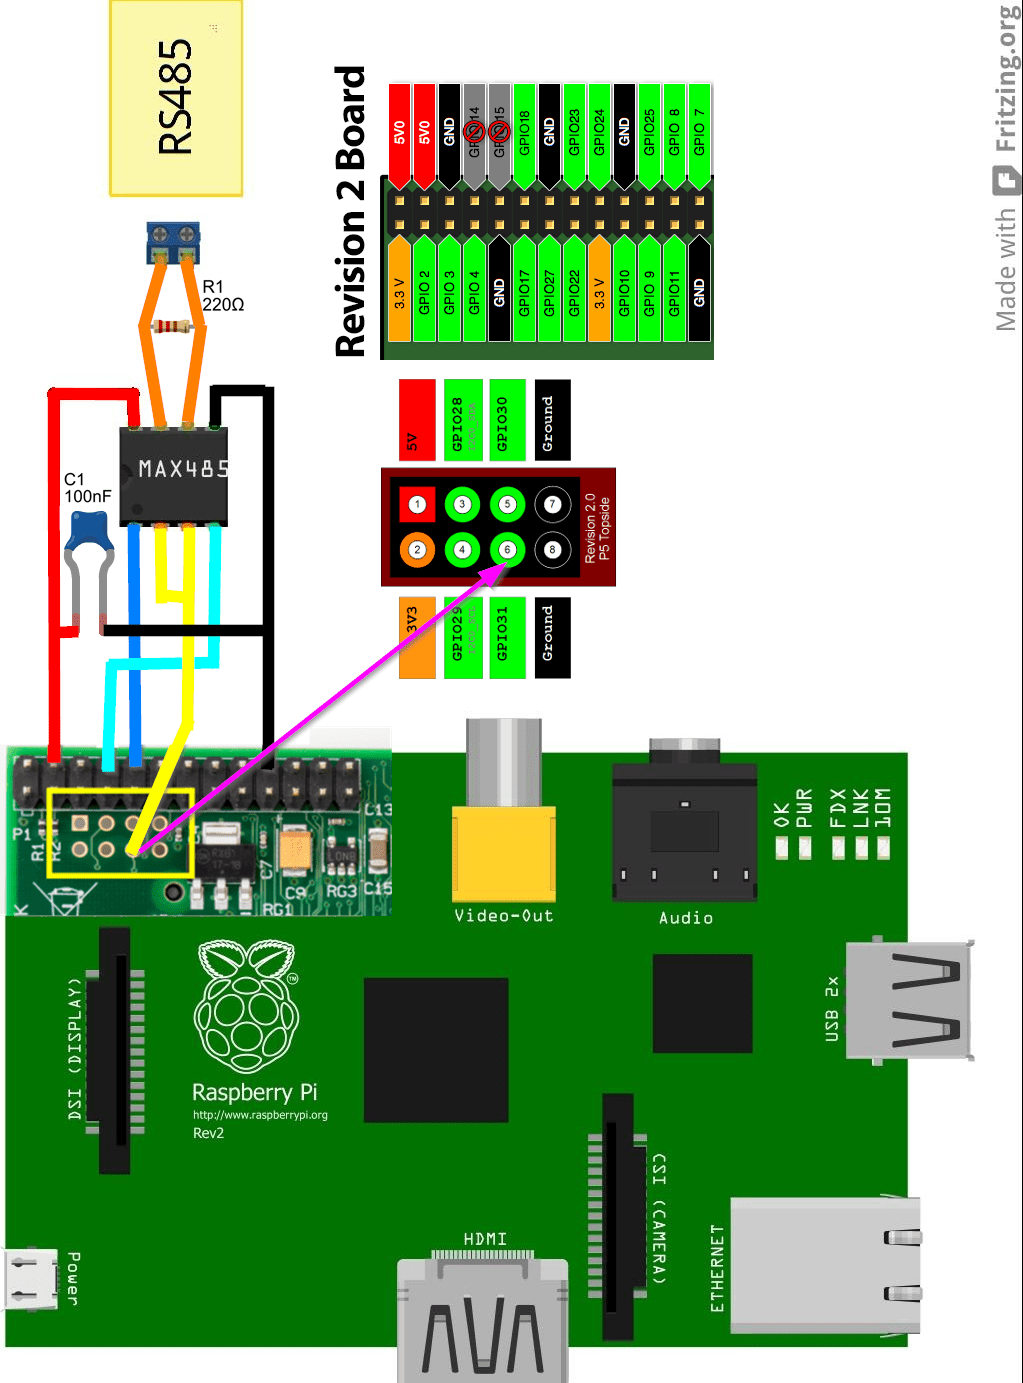 Network Connection Wiring Diagram Raspbian Rs 485 And Raspberry Pi Raspberry Pi Stack